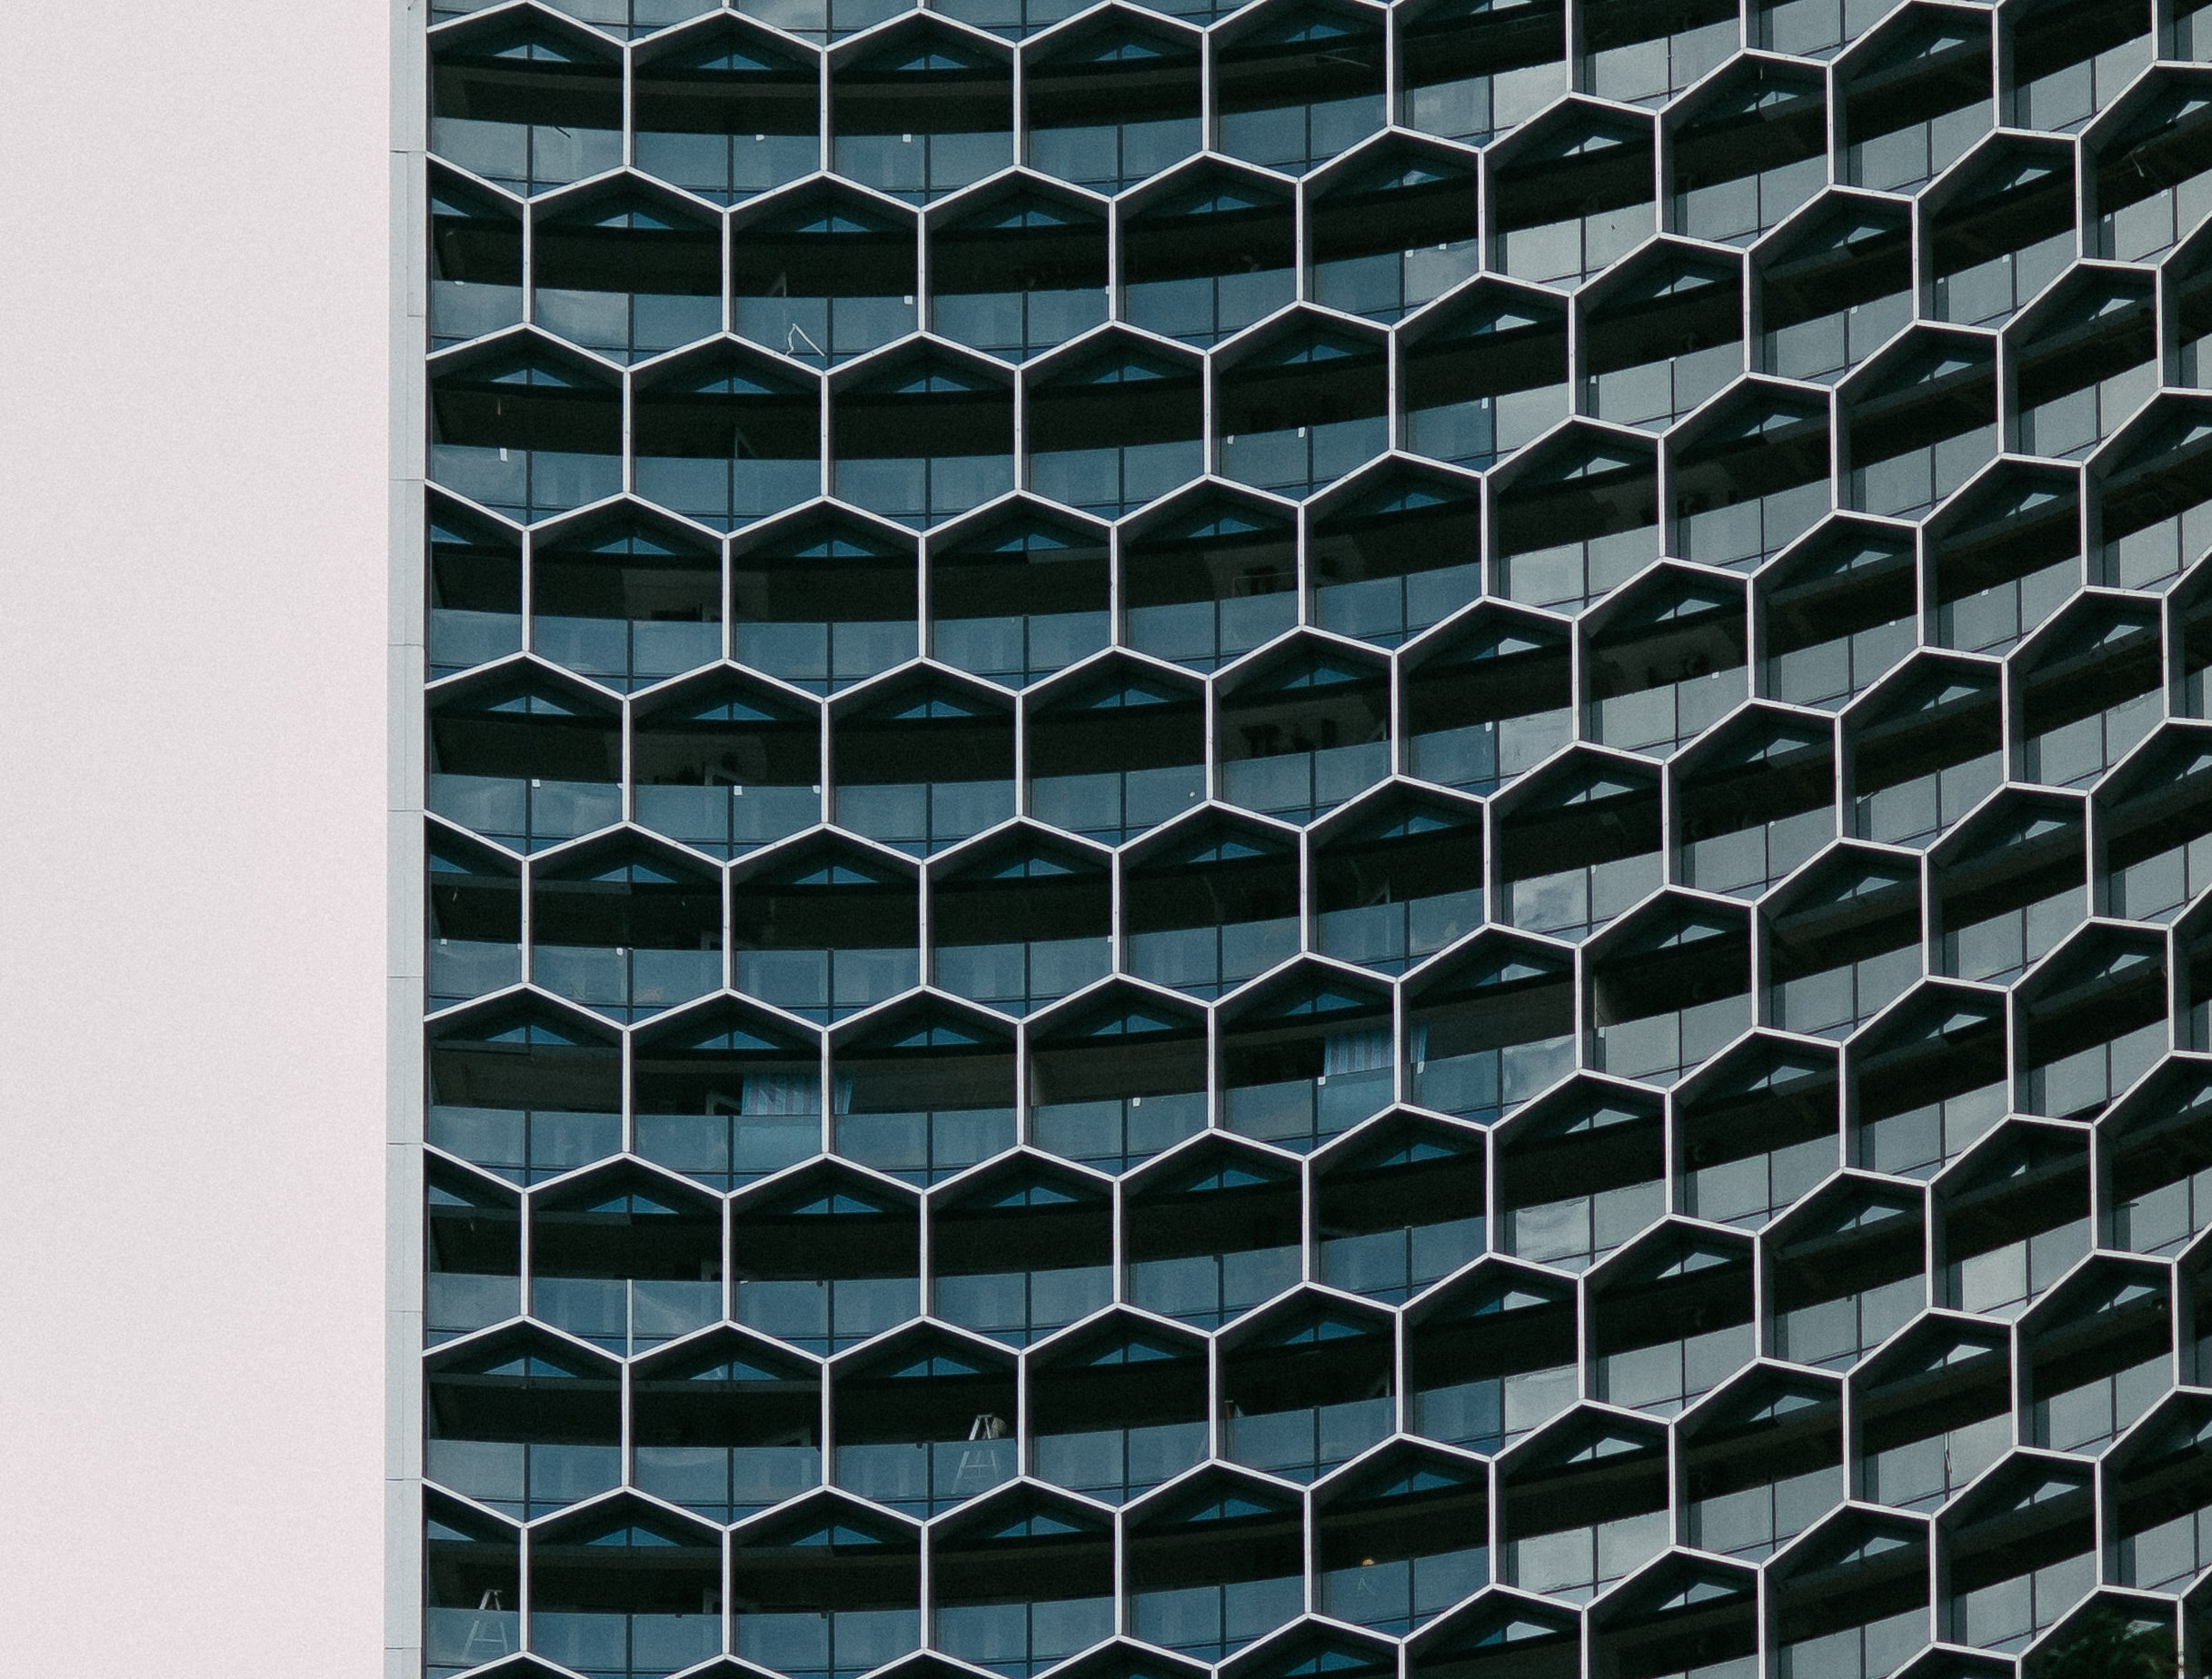 A building with glass hexagon shaped windows